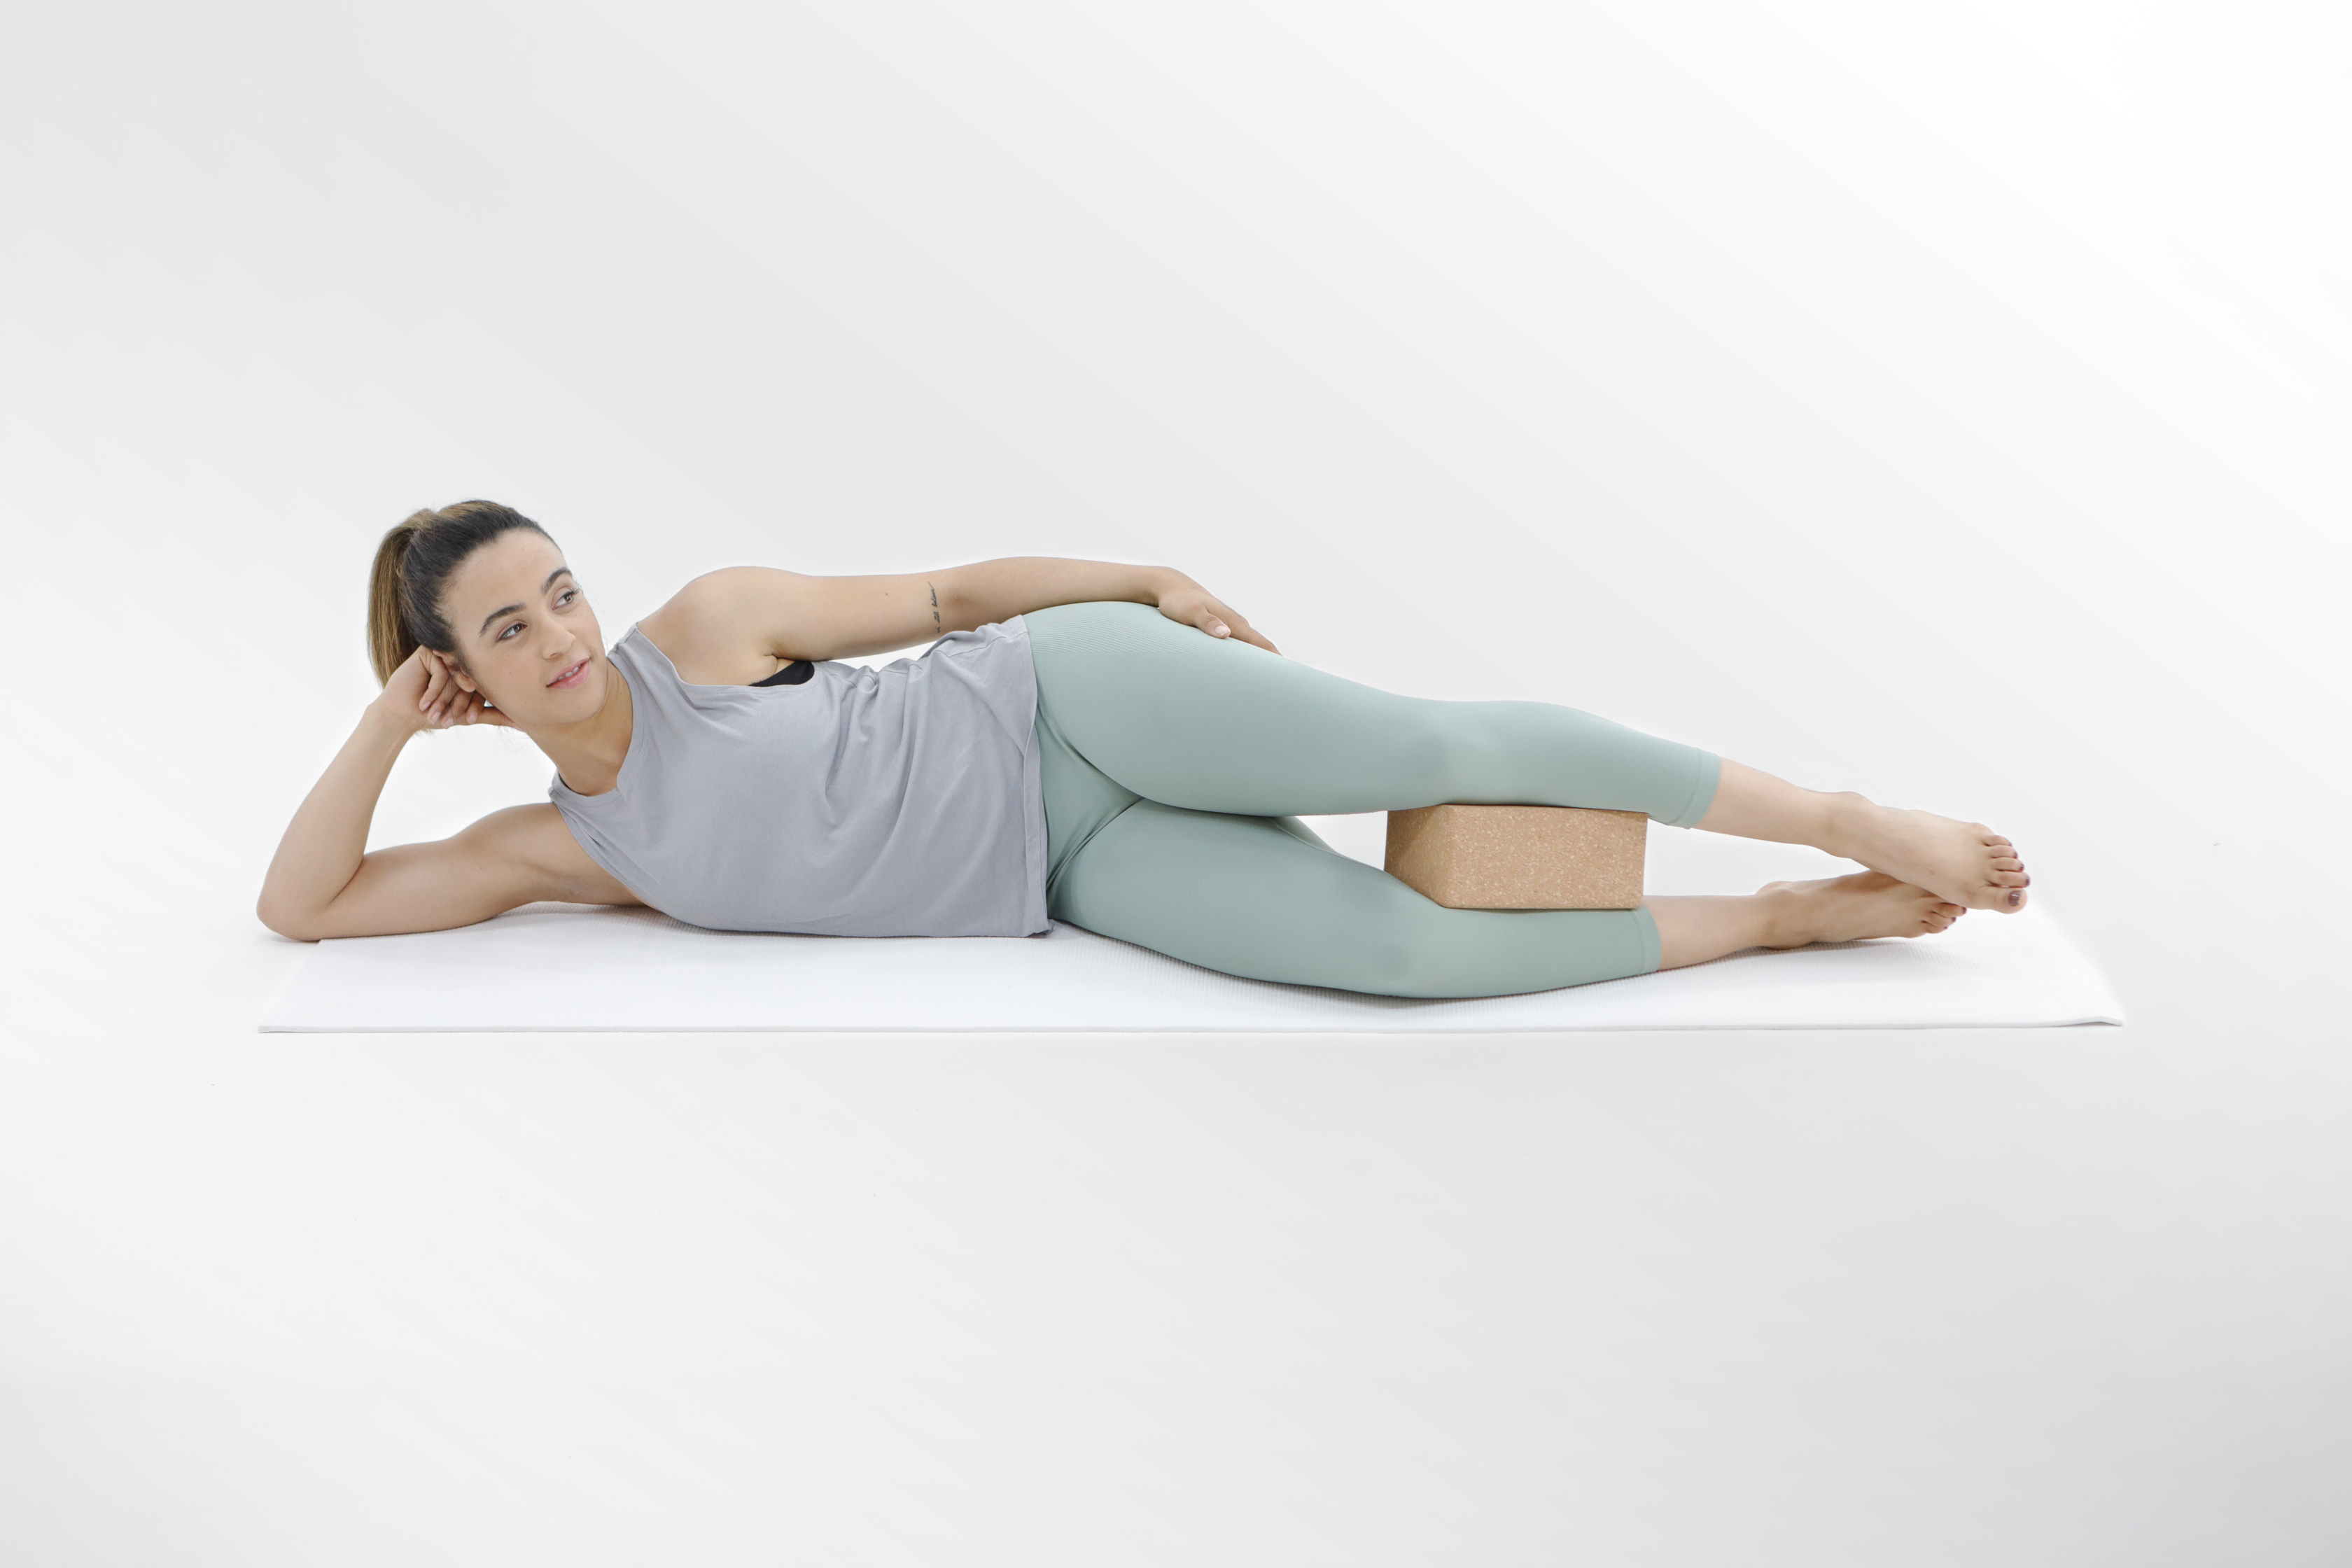 Model lying on her side with yoga block between legs